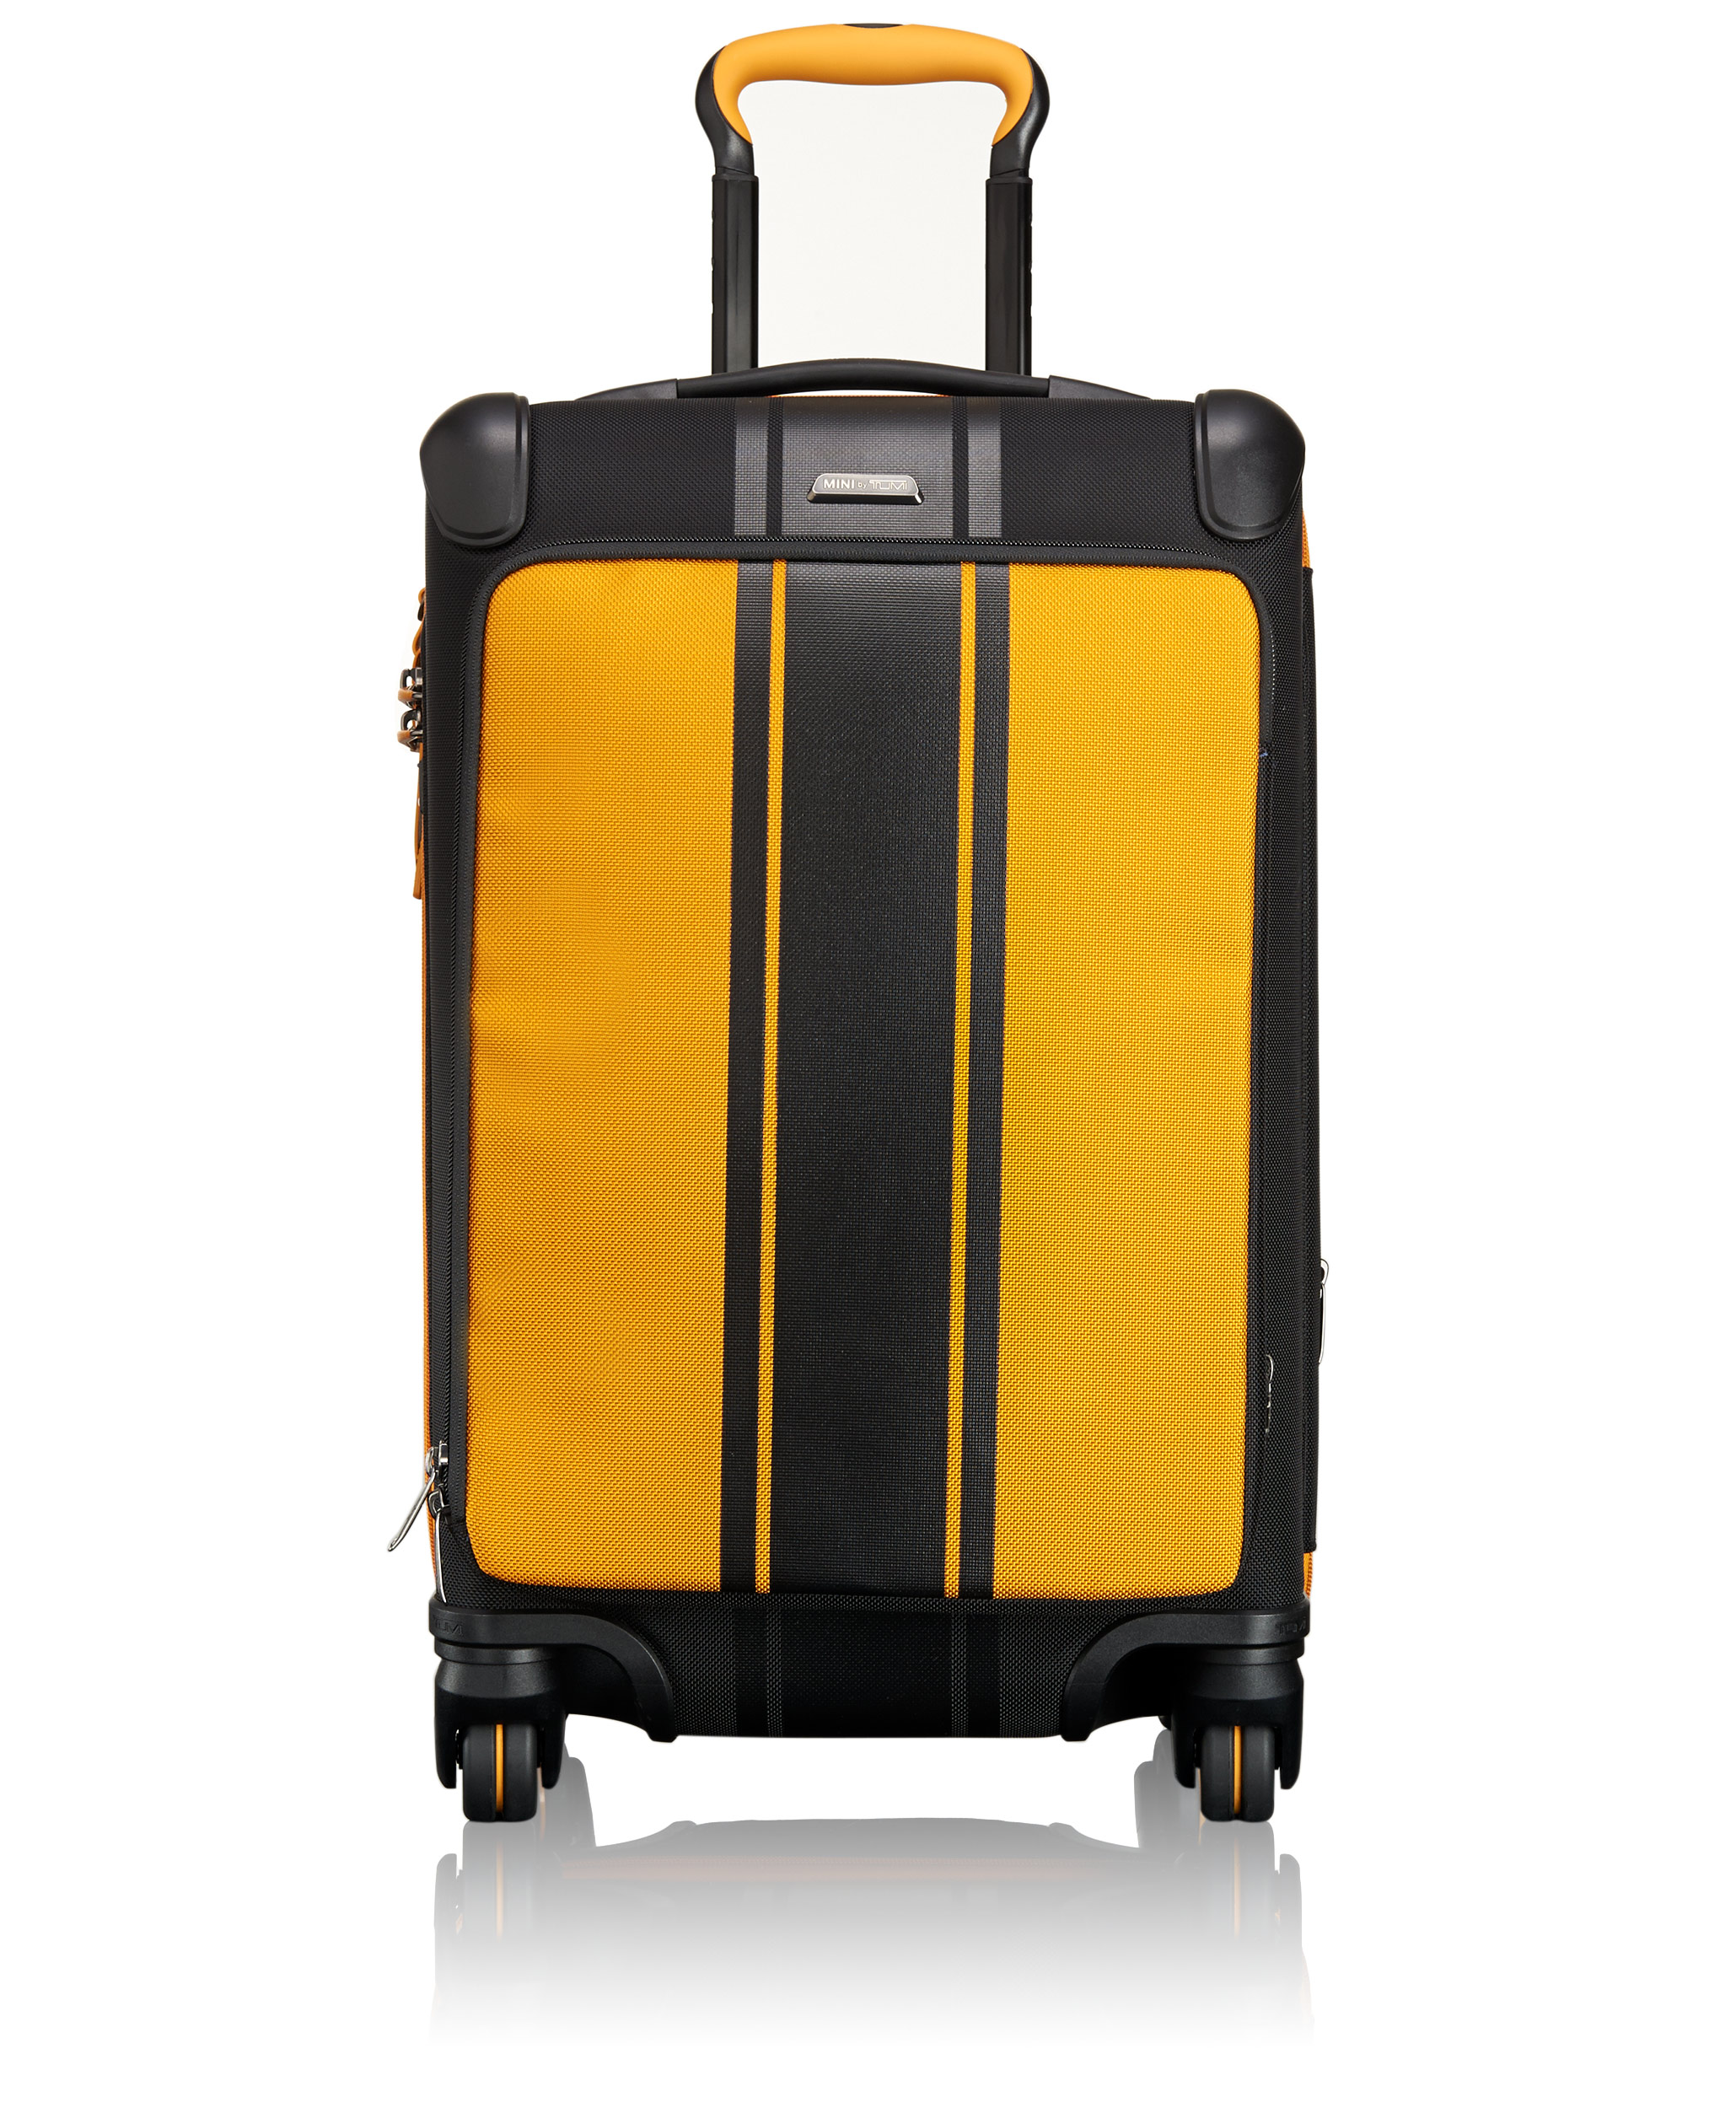 TUMI International carry-on case